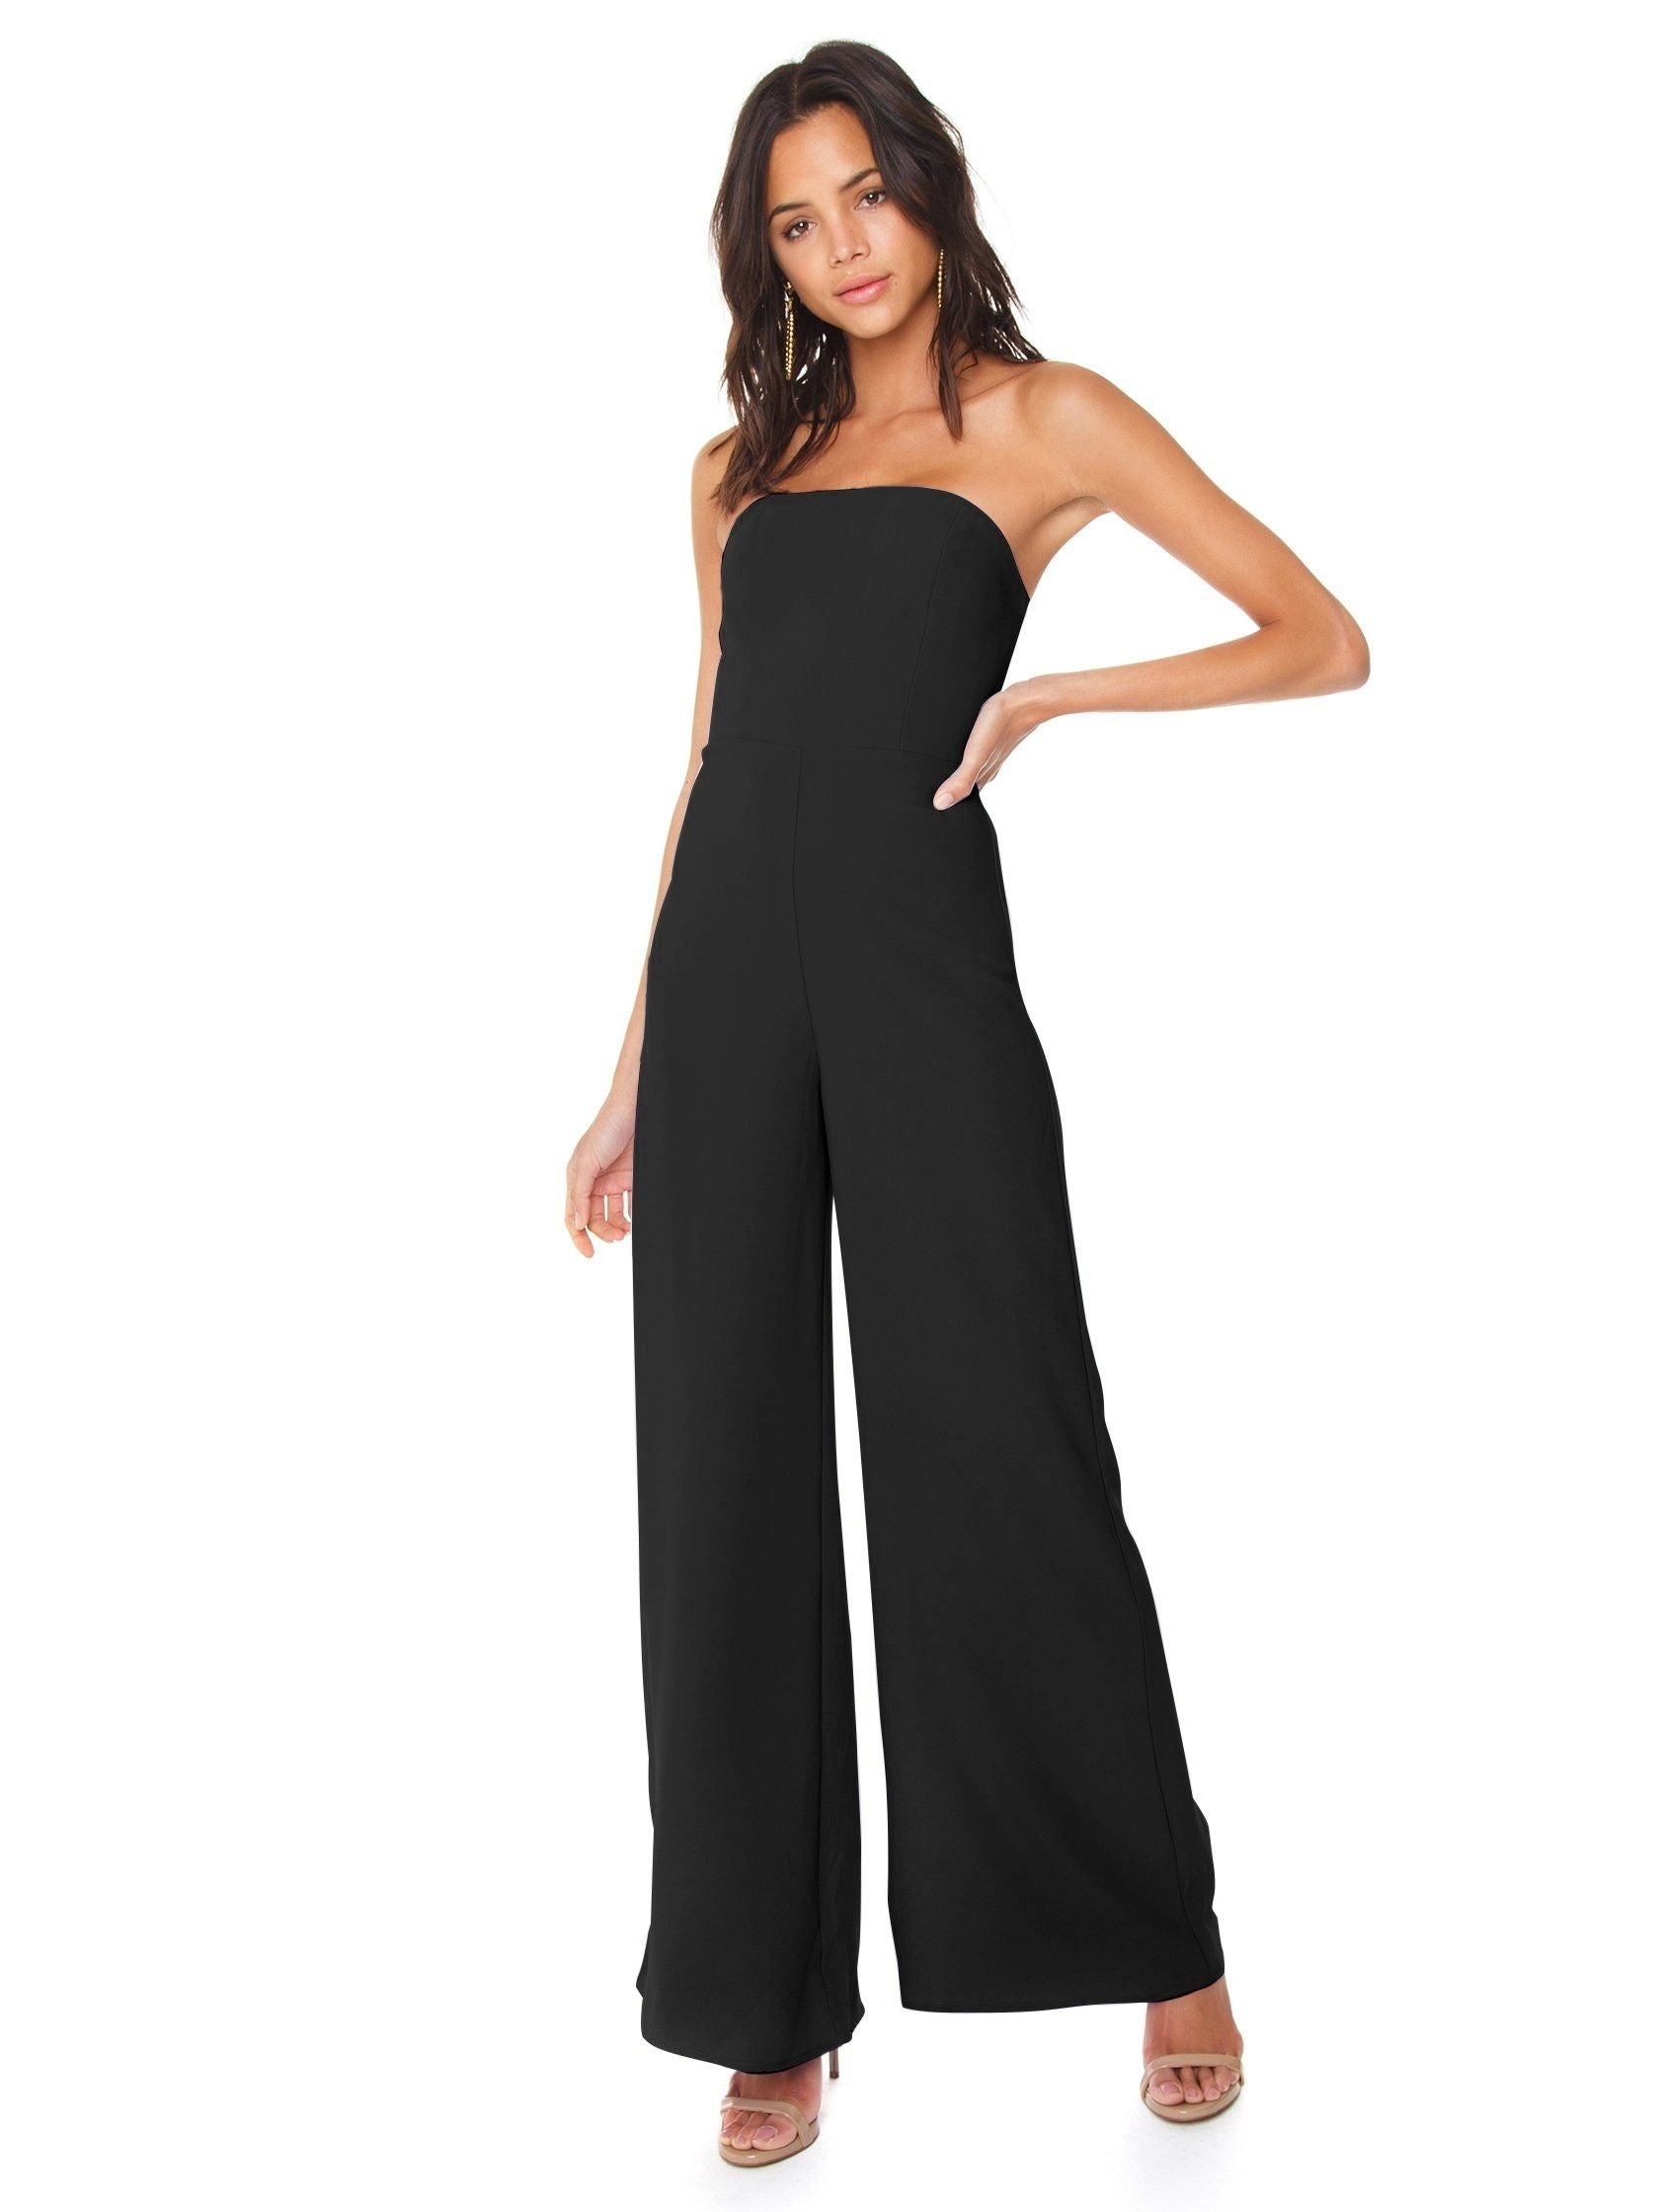 Women wearing a jumpsuit rental from Amanda Uprichard called Mandy Jumpsuit